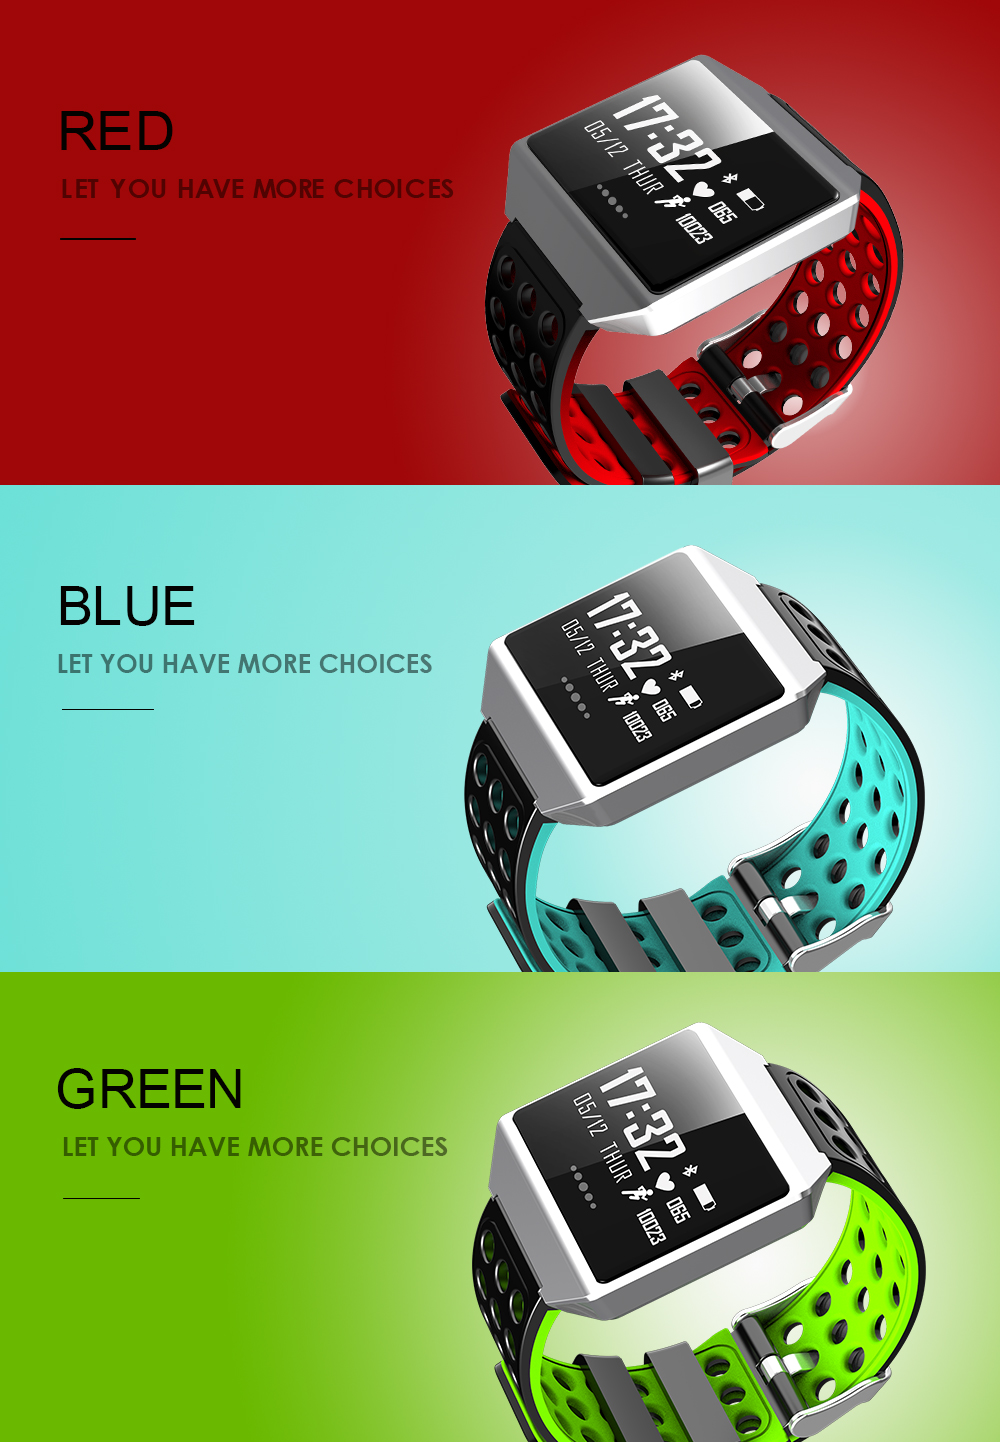 MOCRUX CK12 Smartwatch IP67 Waterproof Wearable Device Bluetooth Pedometer Heart Rate Monitor Smart Watch For AndroidIOS (4)